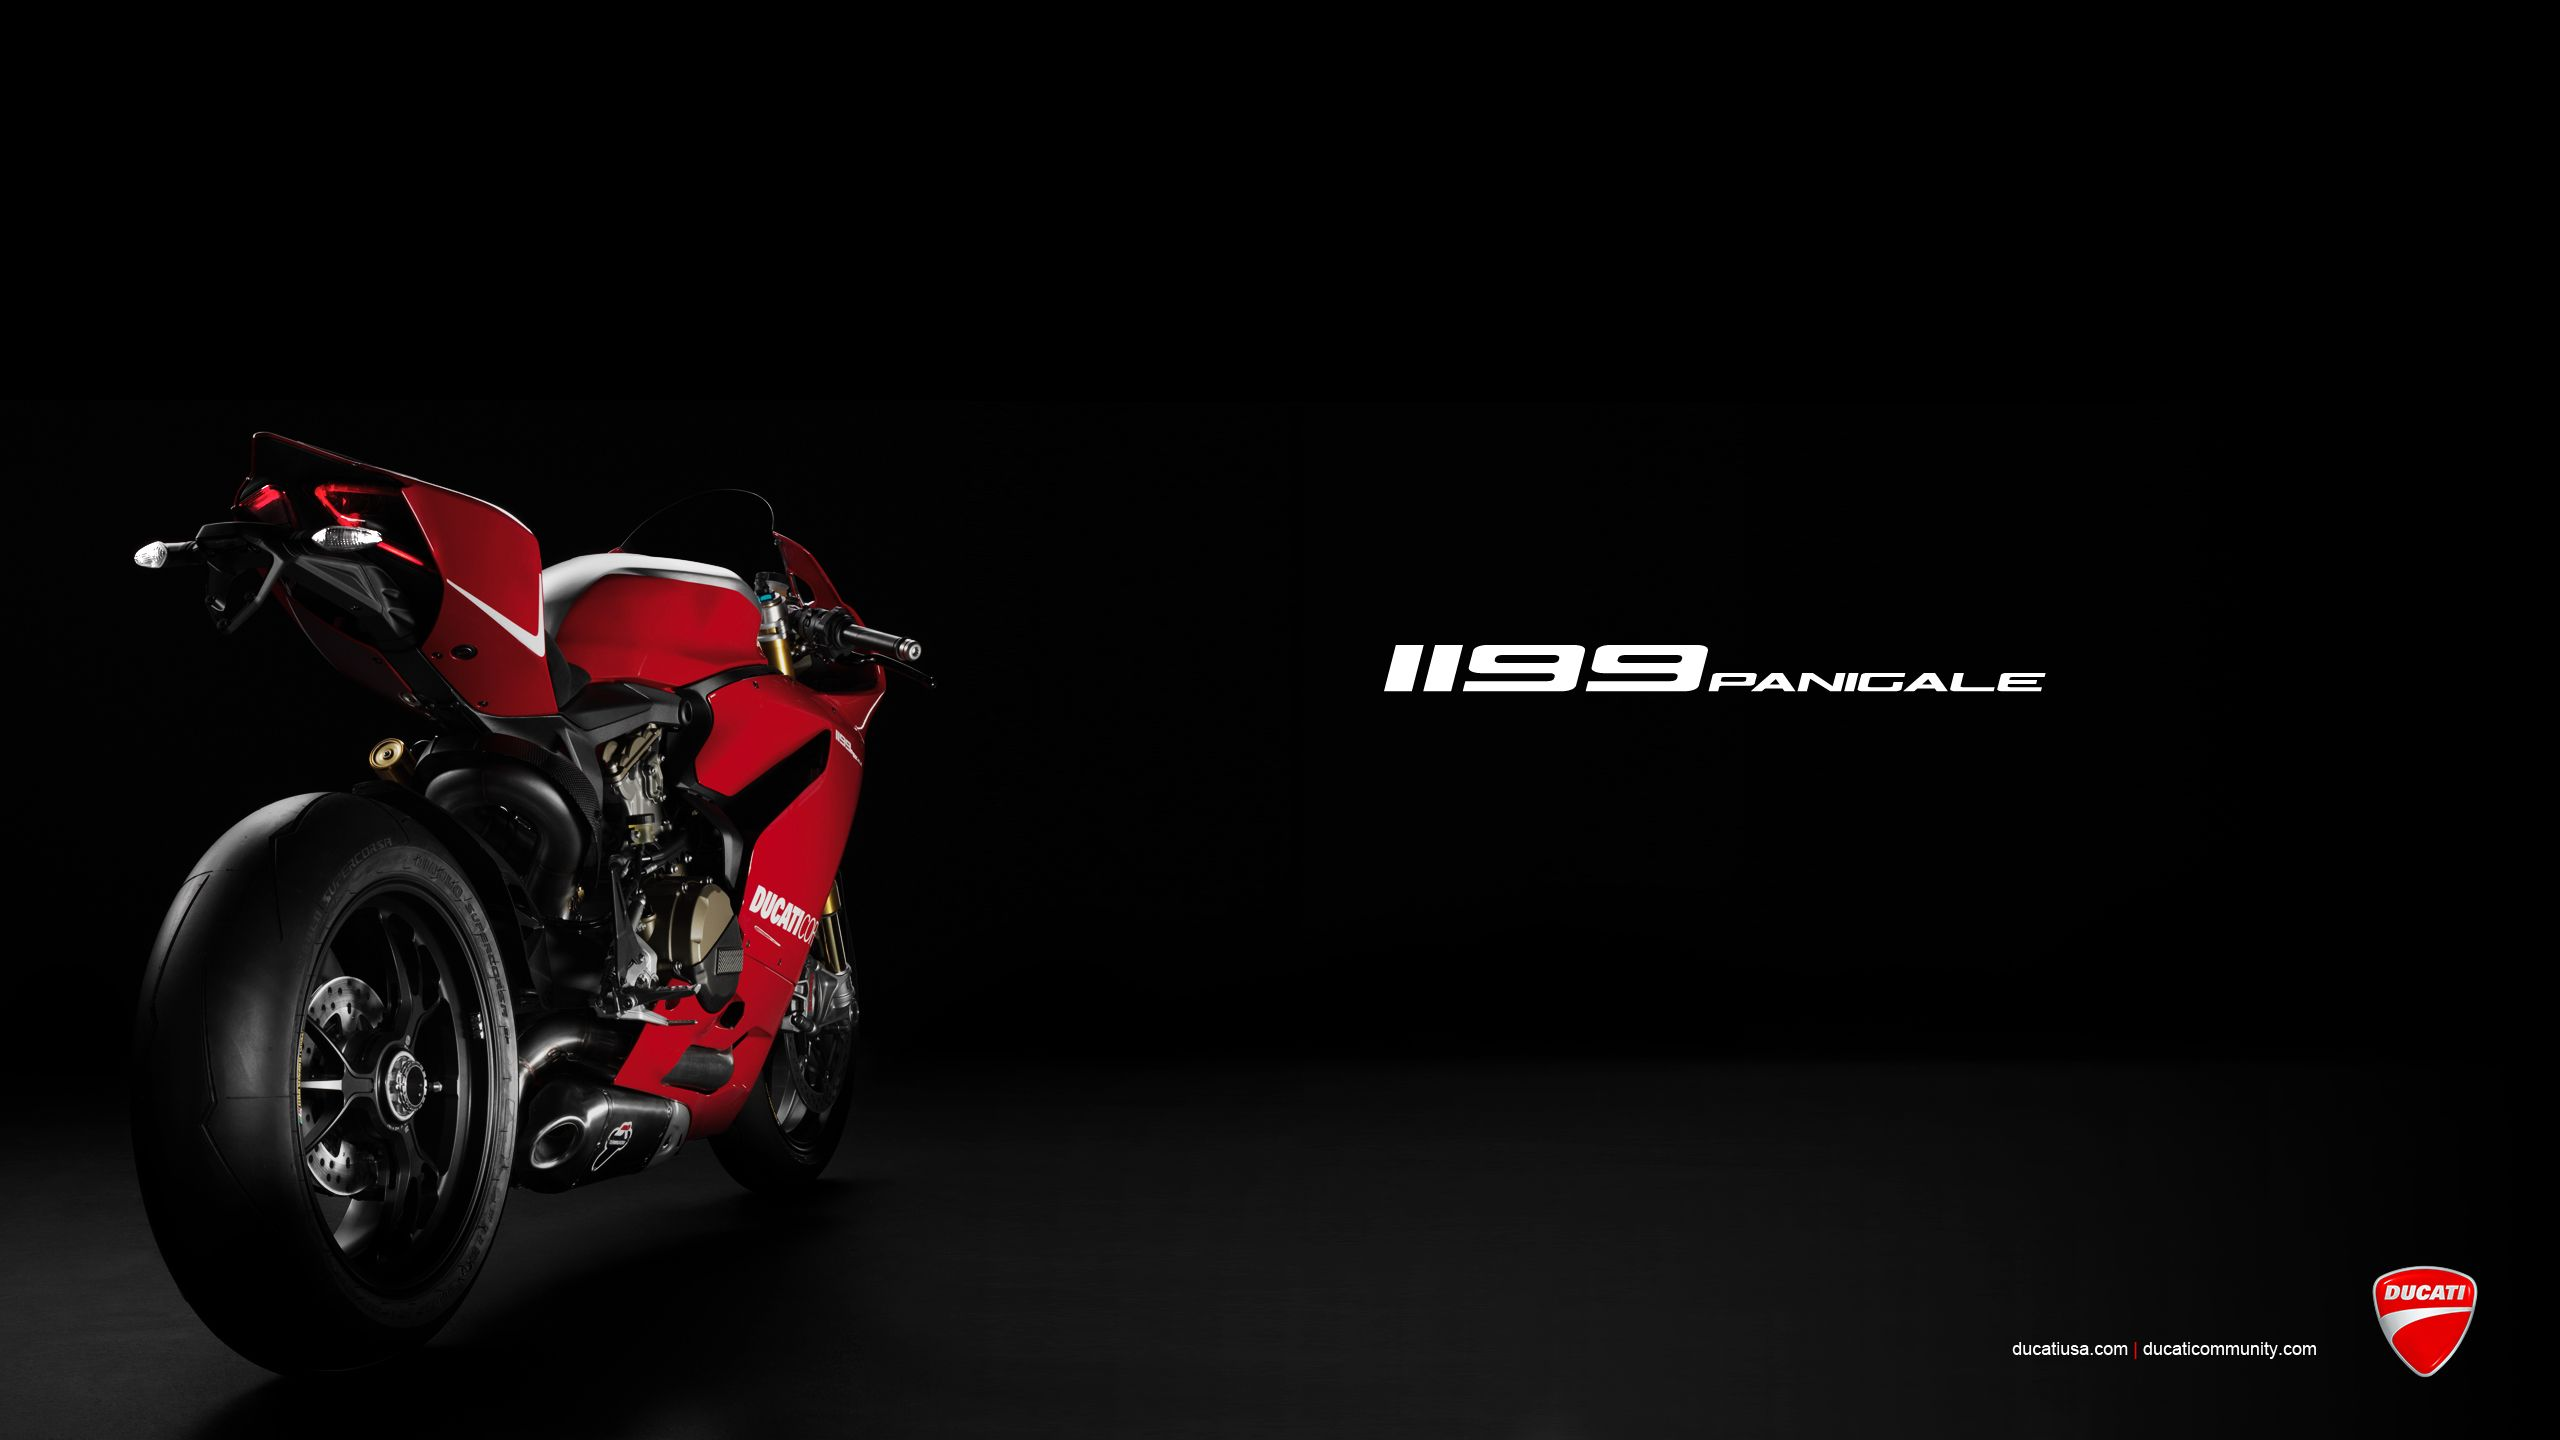 Ducati 1199 Panigale S Wallpapers | HD Wallpapers | Images ...